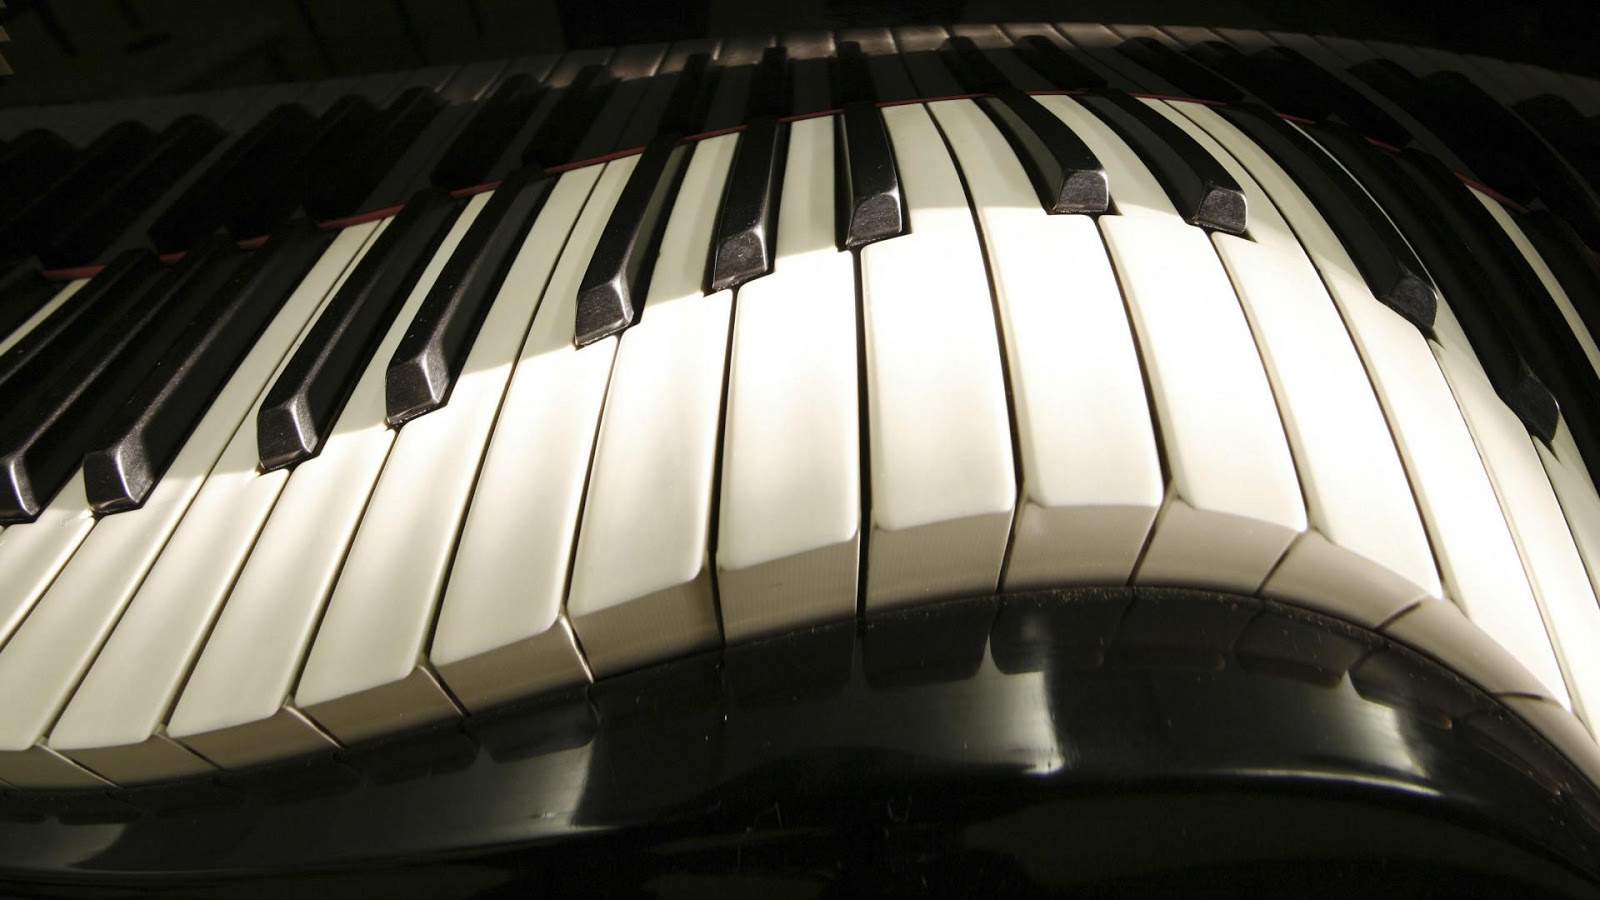 Piano Music Wallpaper: 500 Collection HD Wallpaper